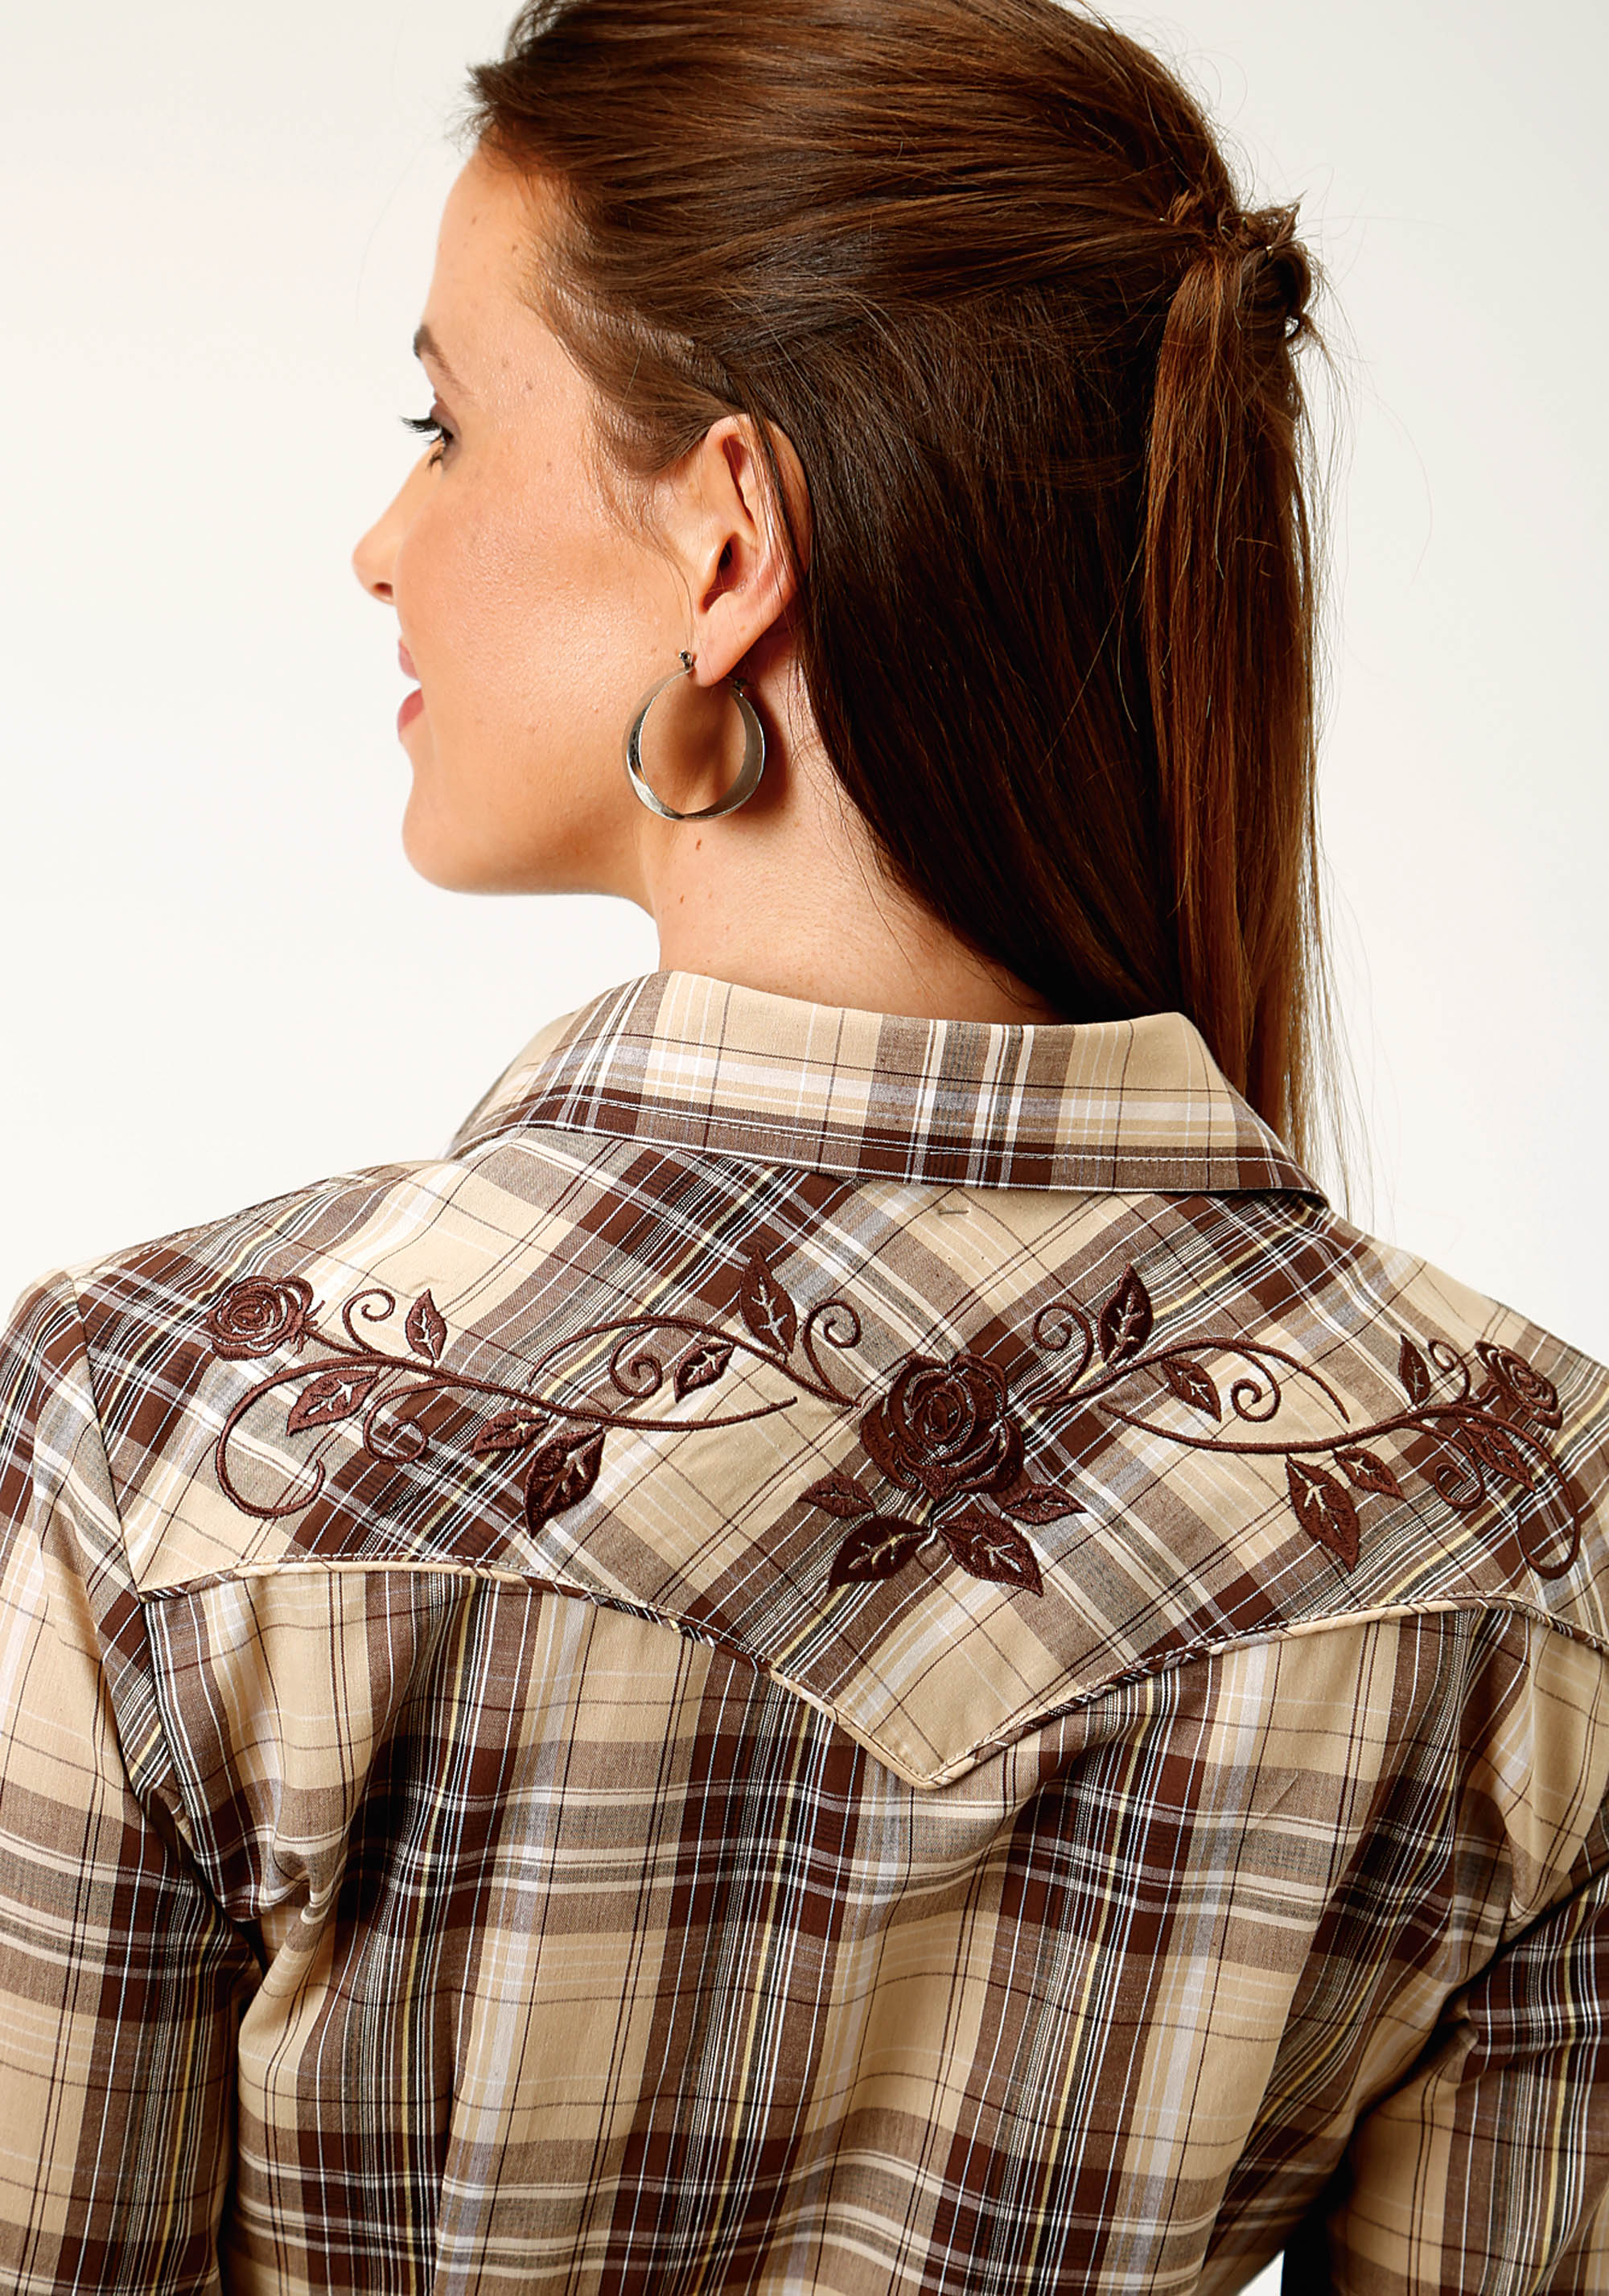 ROPER WOMENS BROWN 3630 BROWN AND TAN PLAID KARMAN SPECIAL STYLES LONG SLEEVE